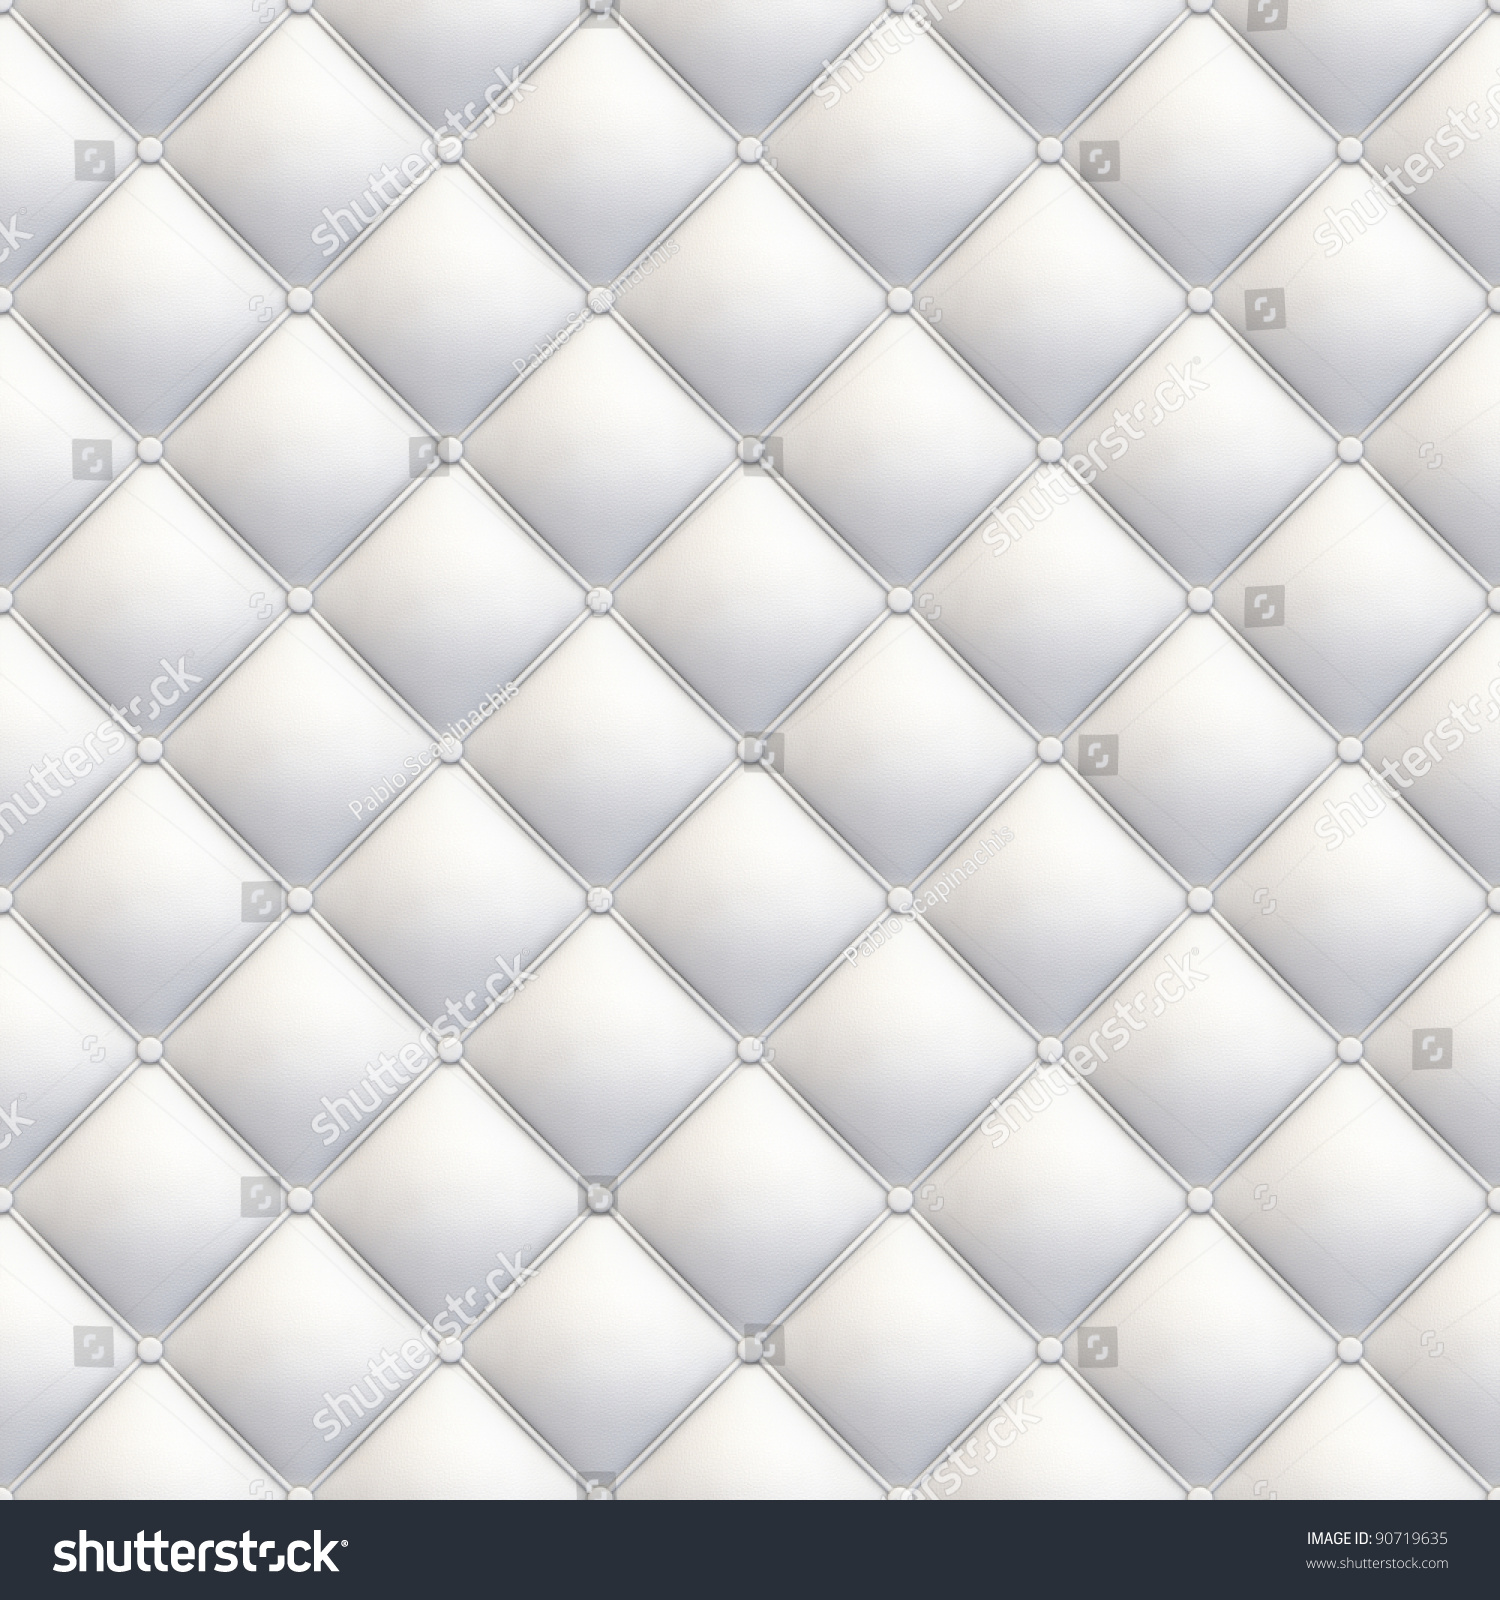 Leather white tile background gallery - Textuur tiling wit ...